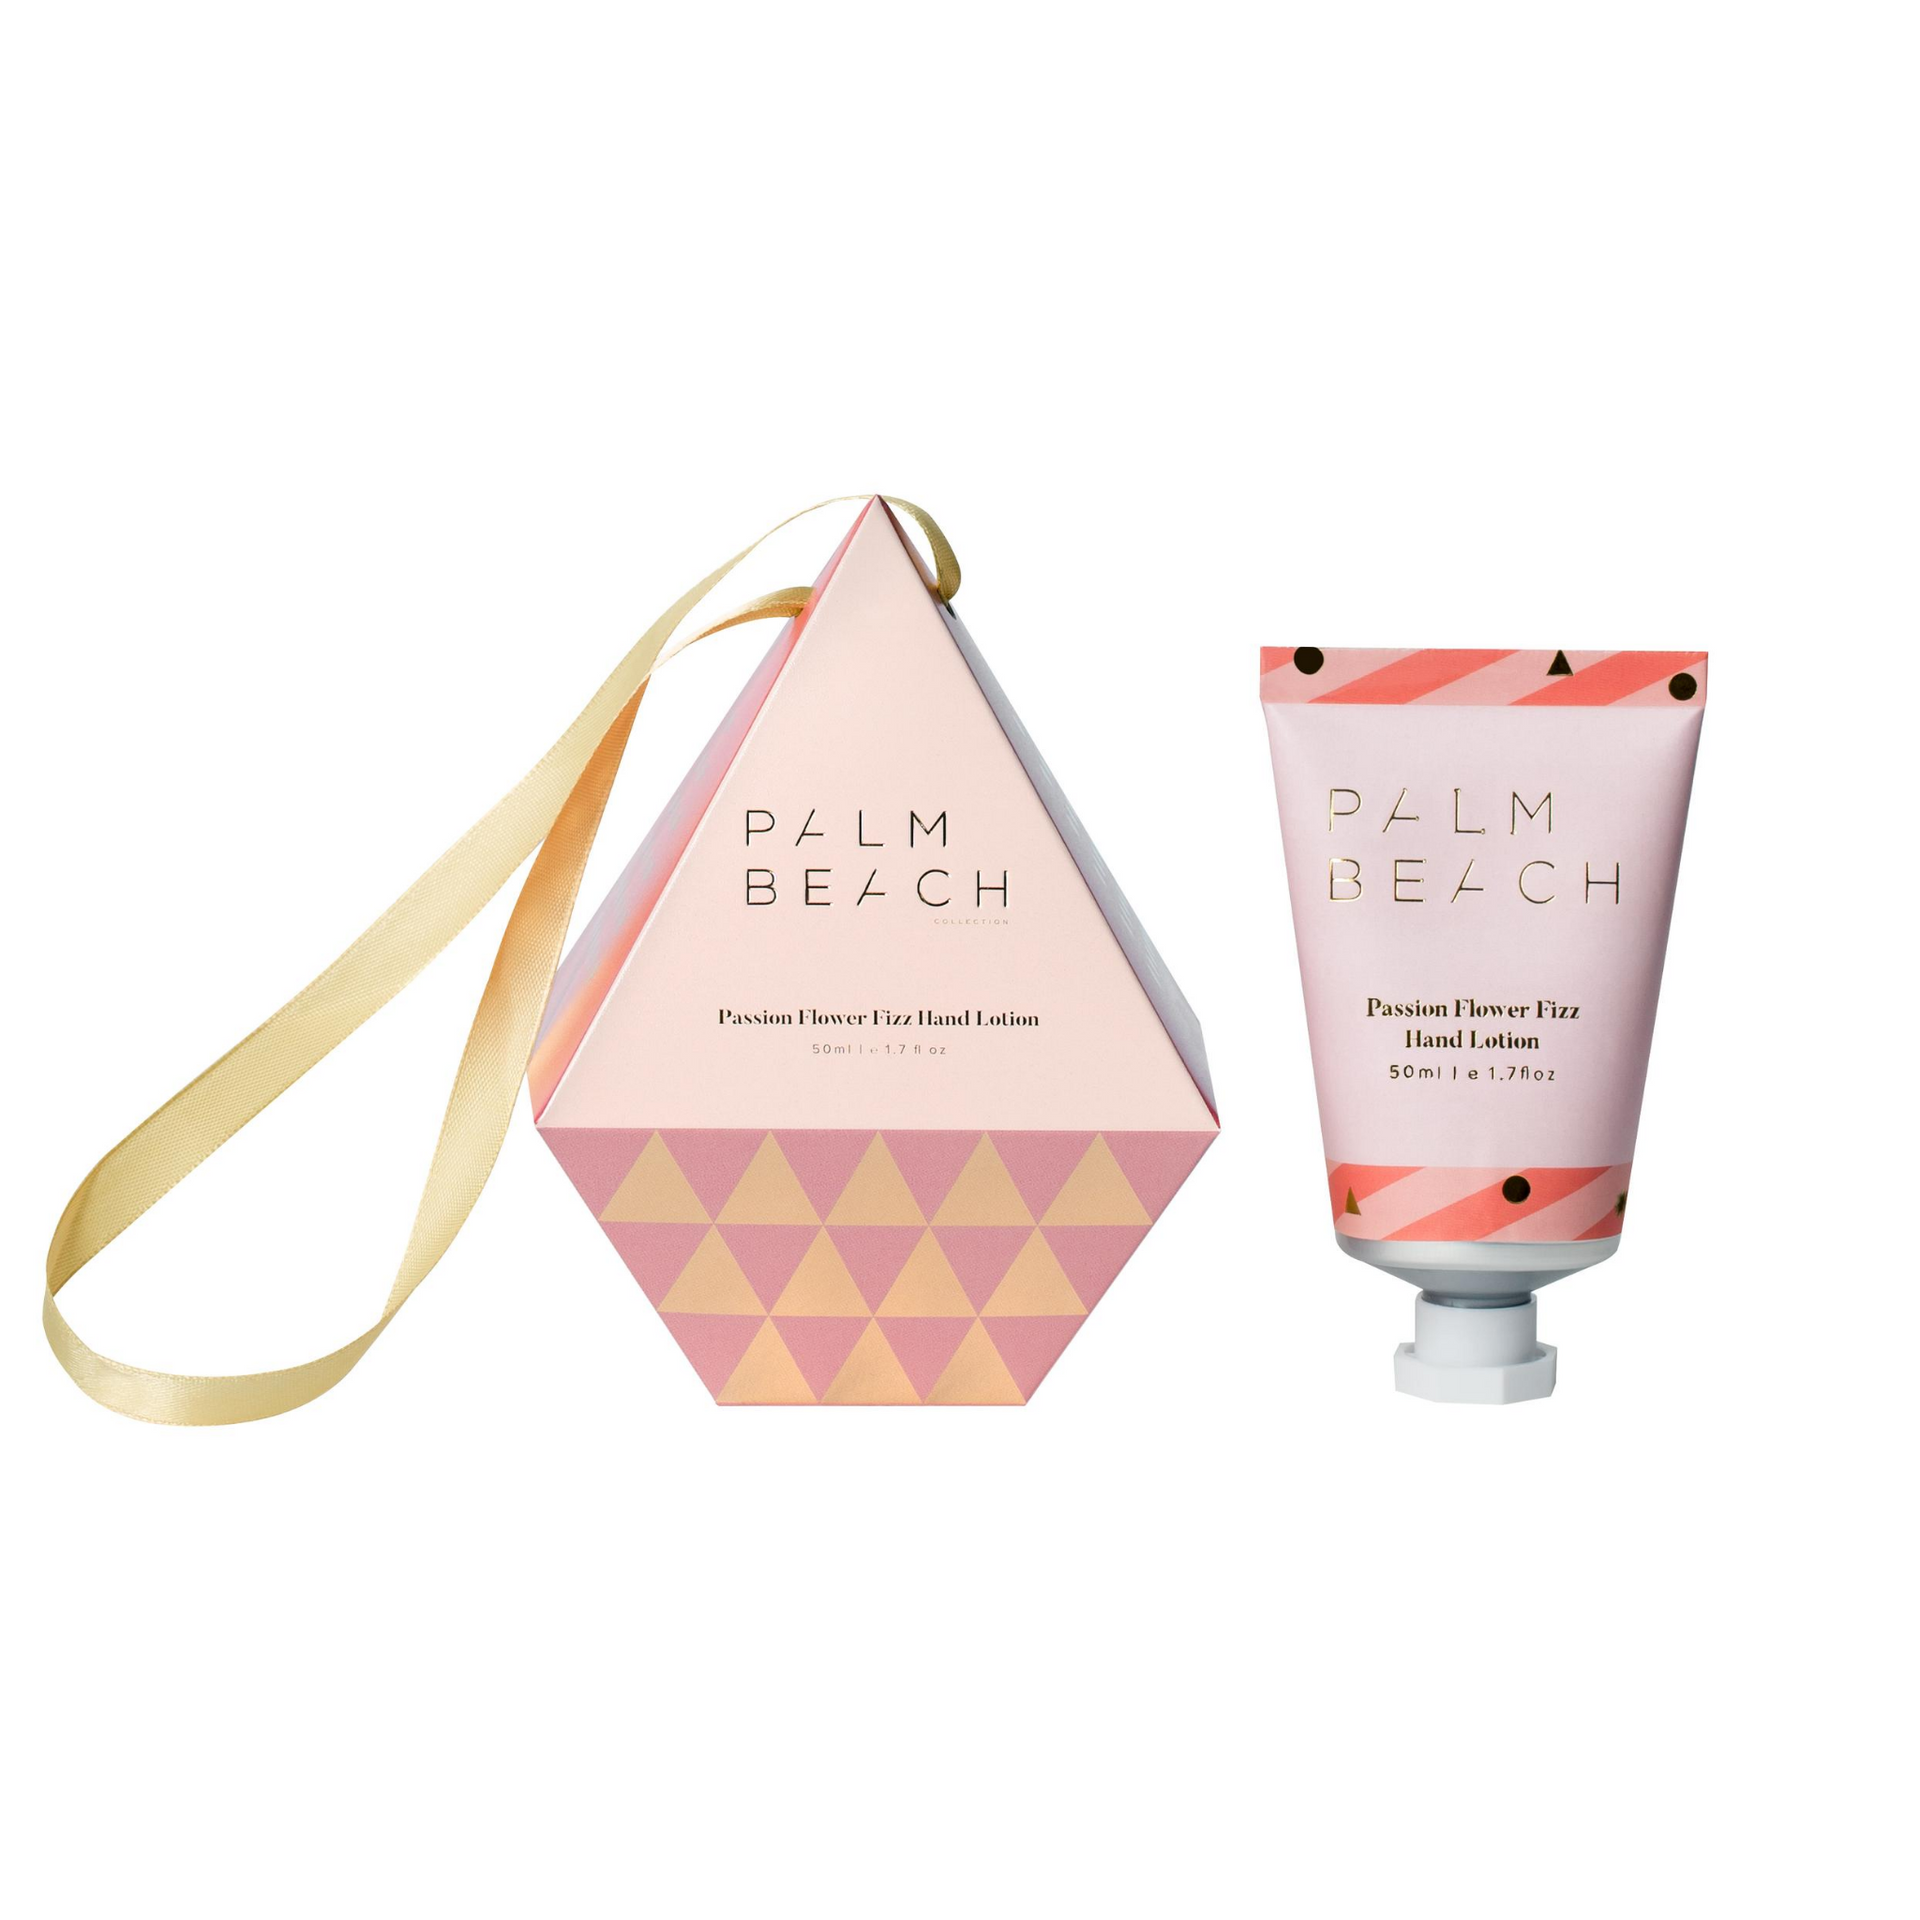 Passion Flower Fizz Hanging Bauble 50ml Hand Lotion